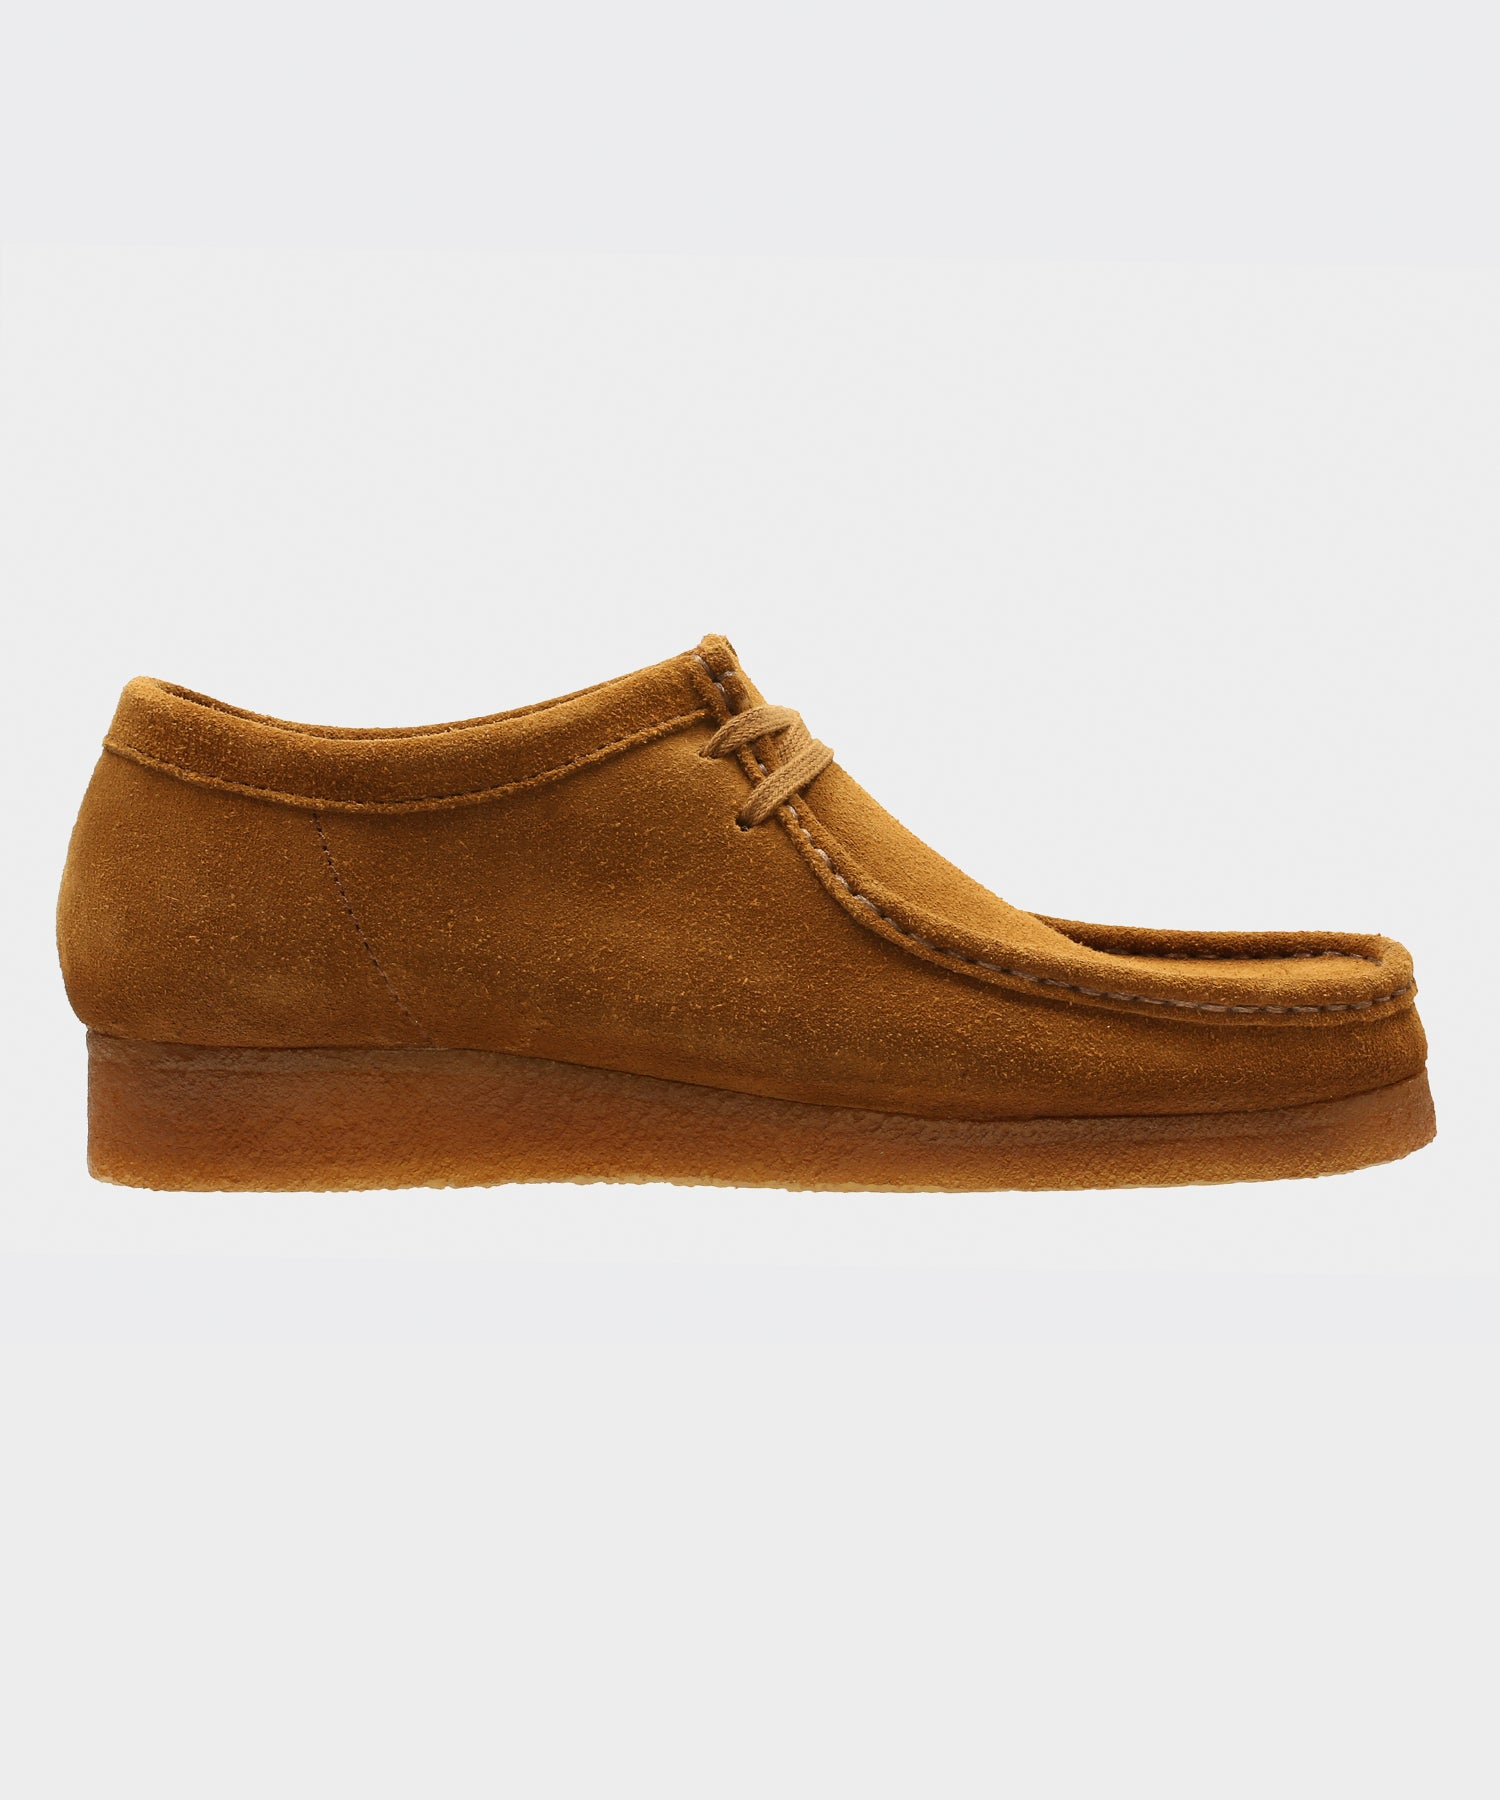 Clarks Wallabee in Cola